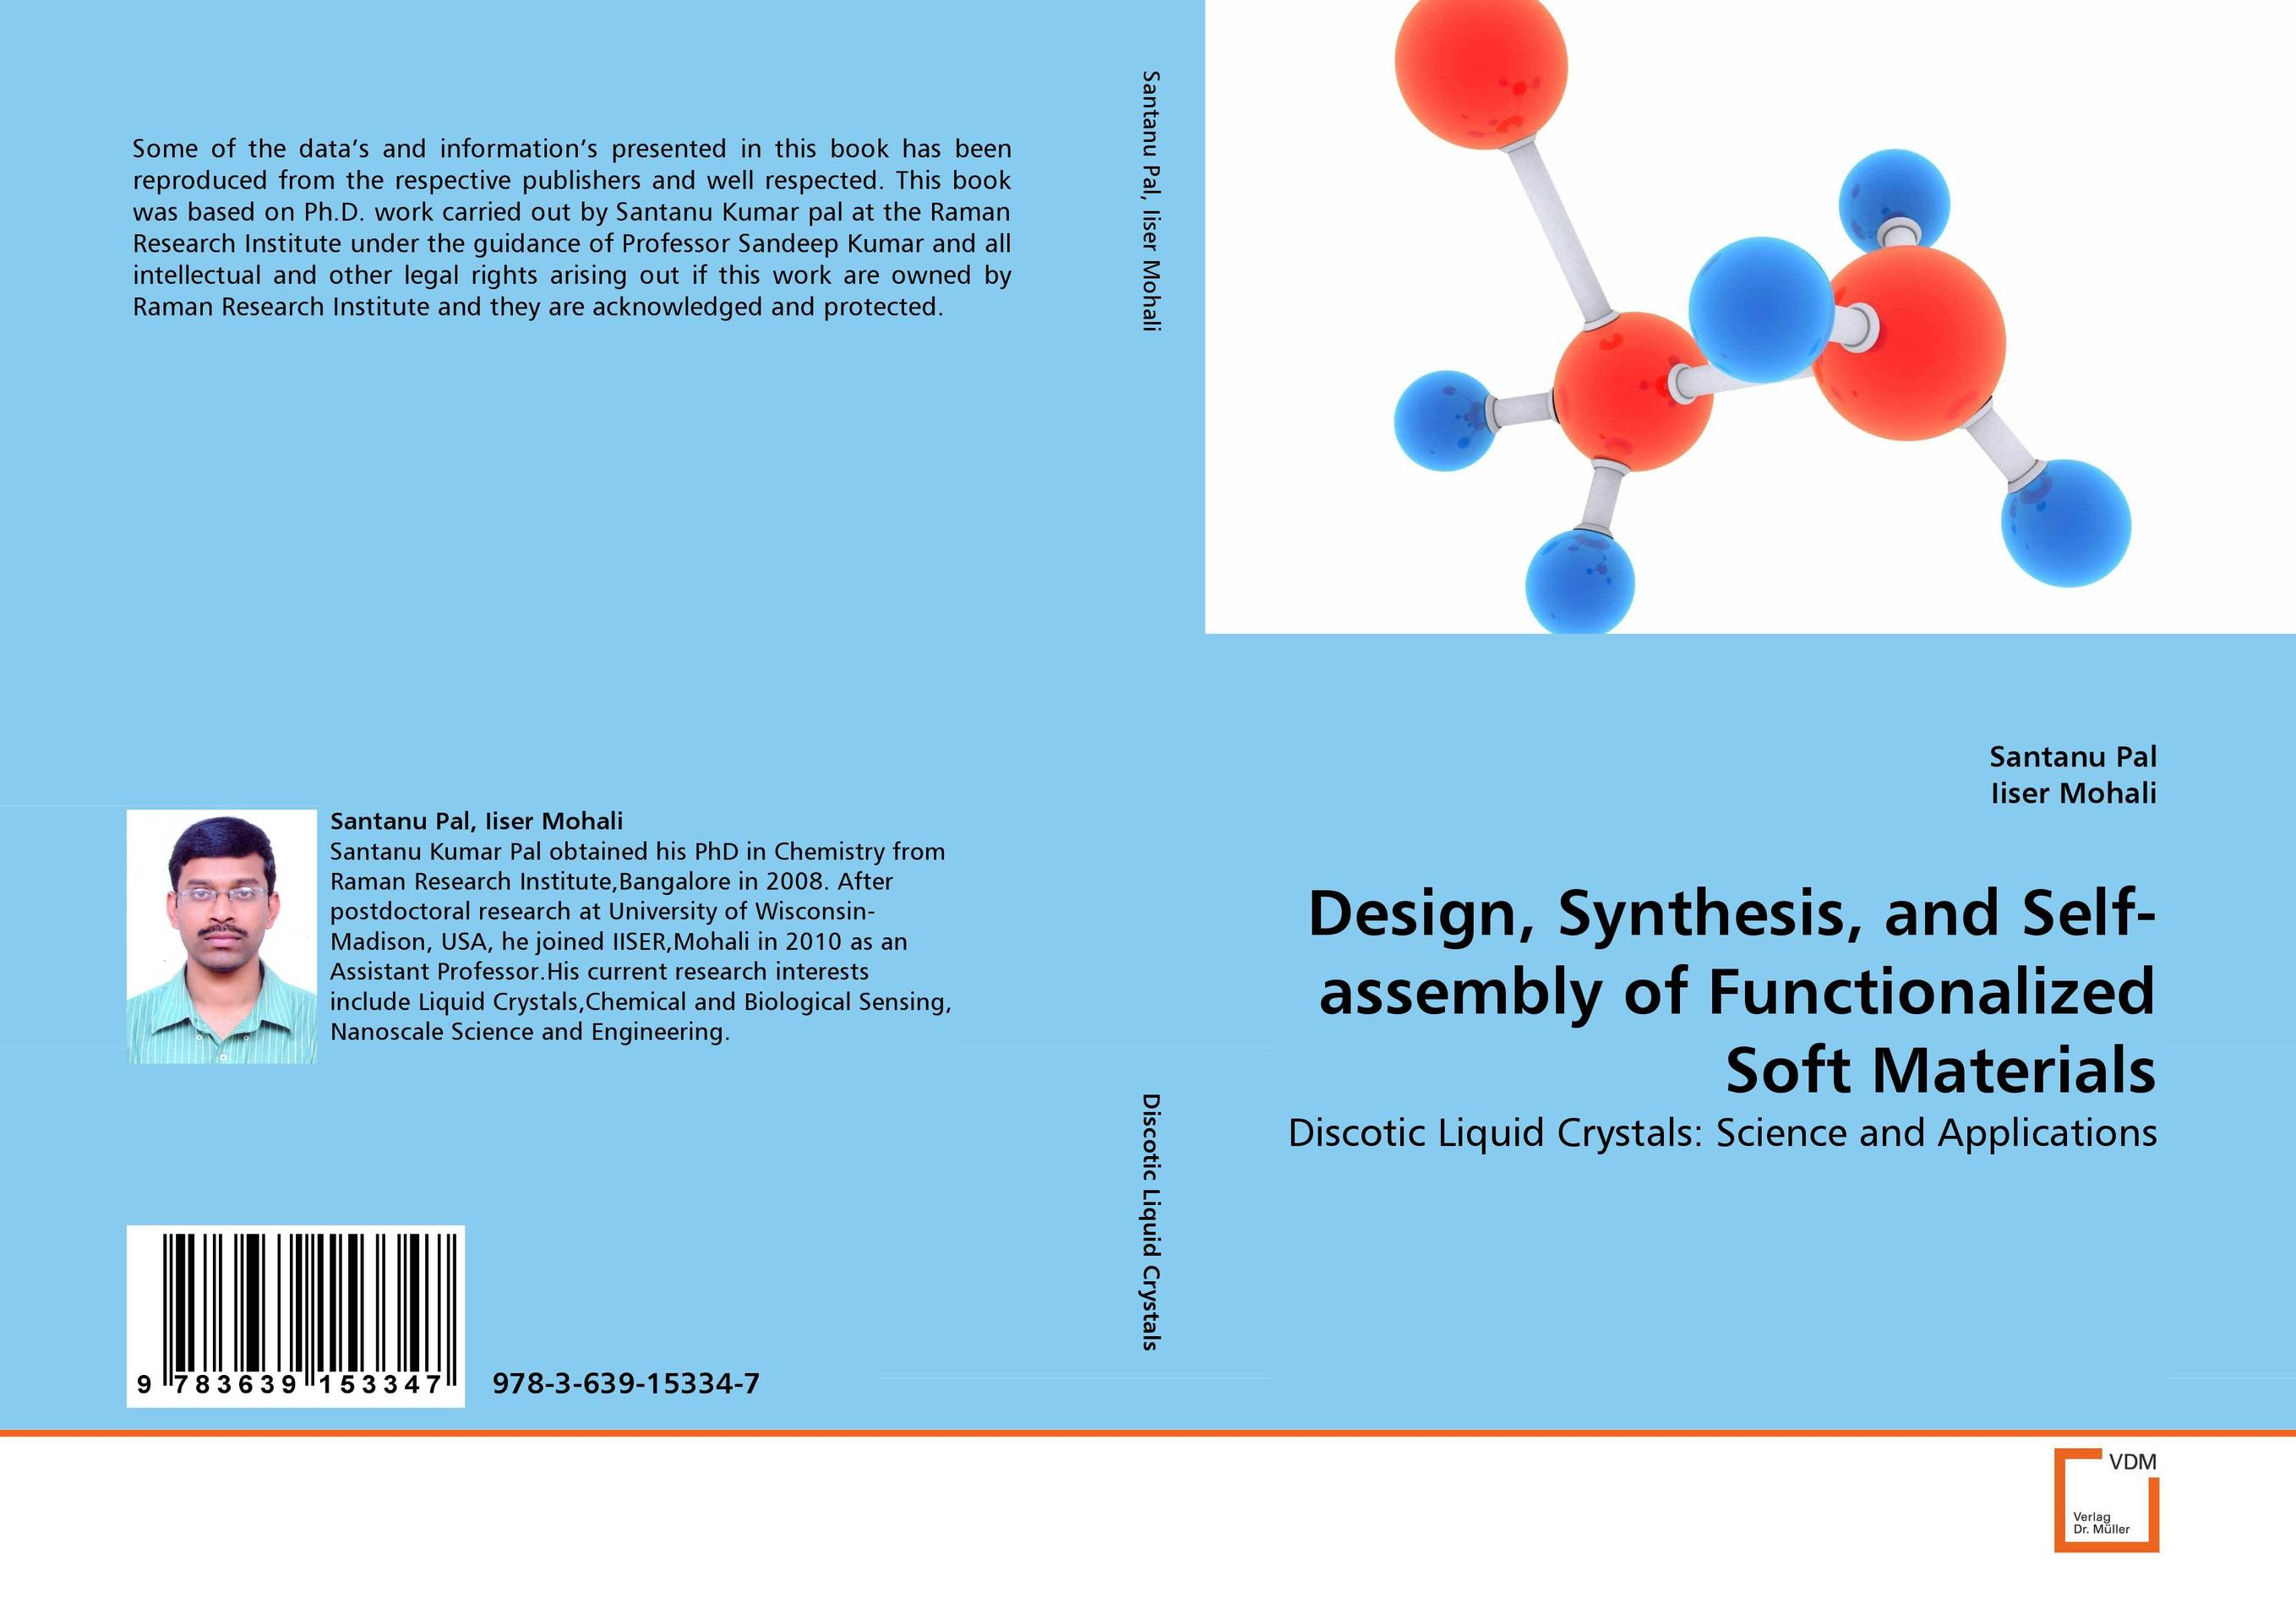 Design, Synthesis, and Self-assembly of Functionalized Soft Materials vinod kumar adigopula rakesh kumar and sunny deol guzzarlapudi overlay design of low volume road using light weight deflectometer